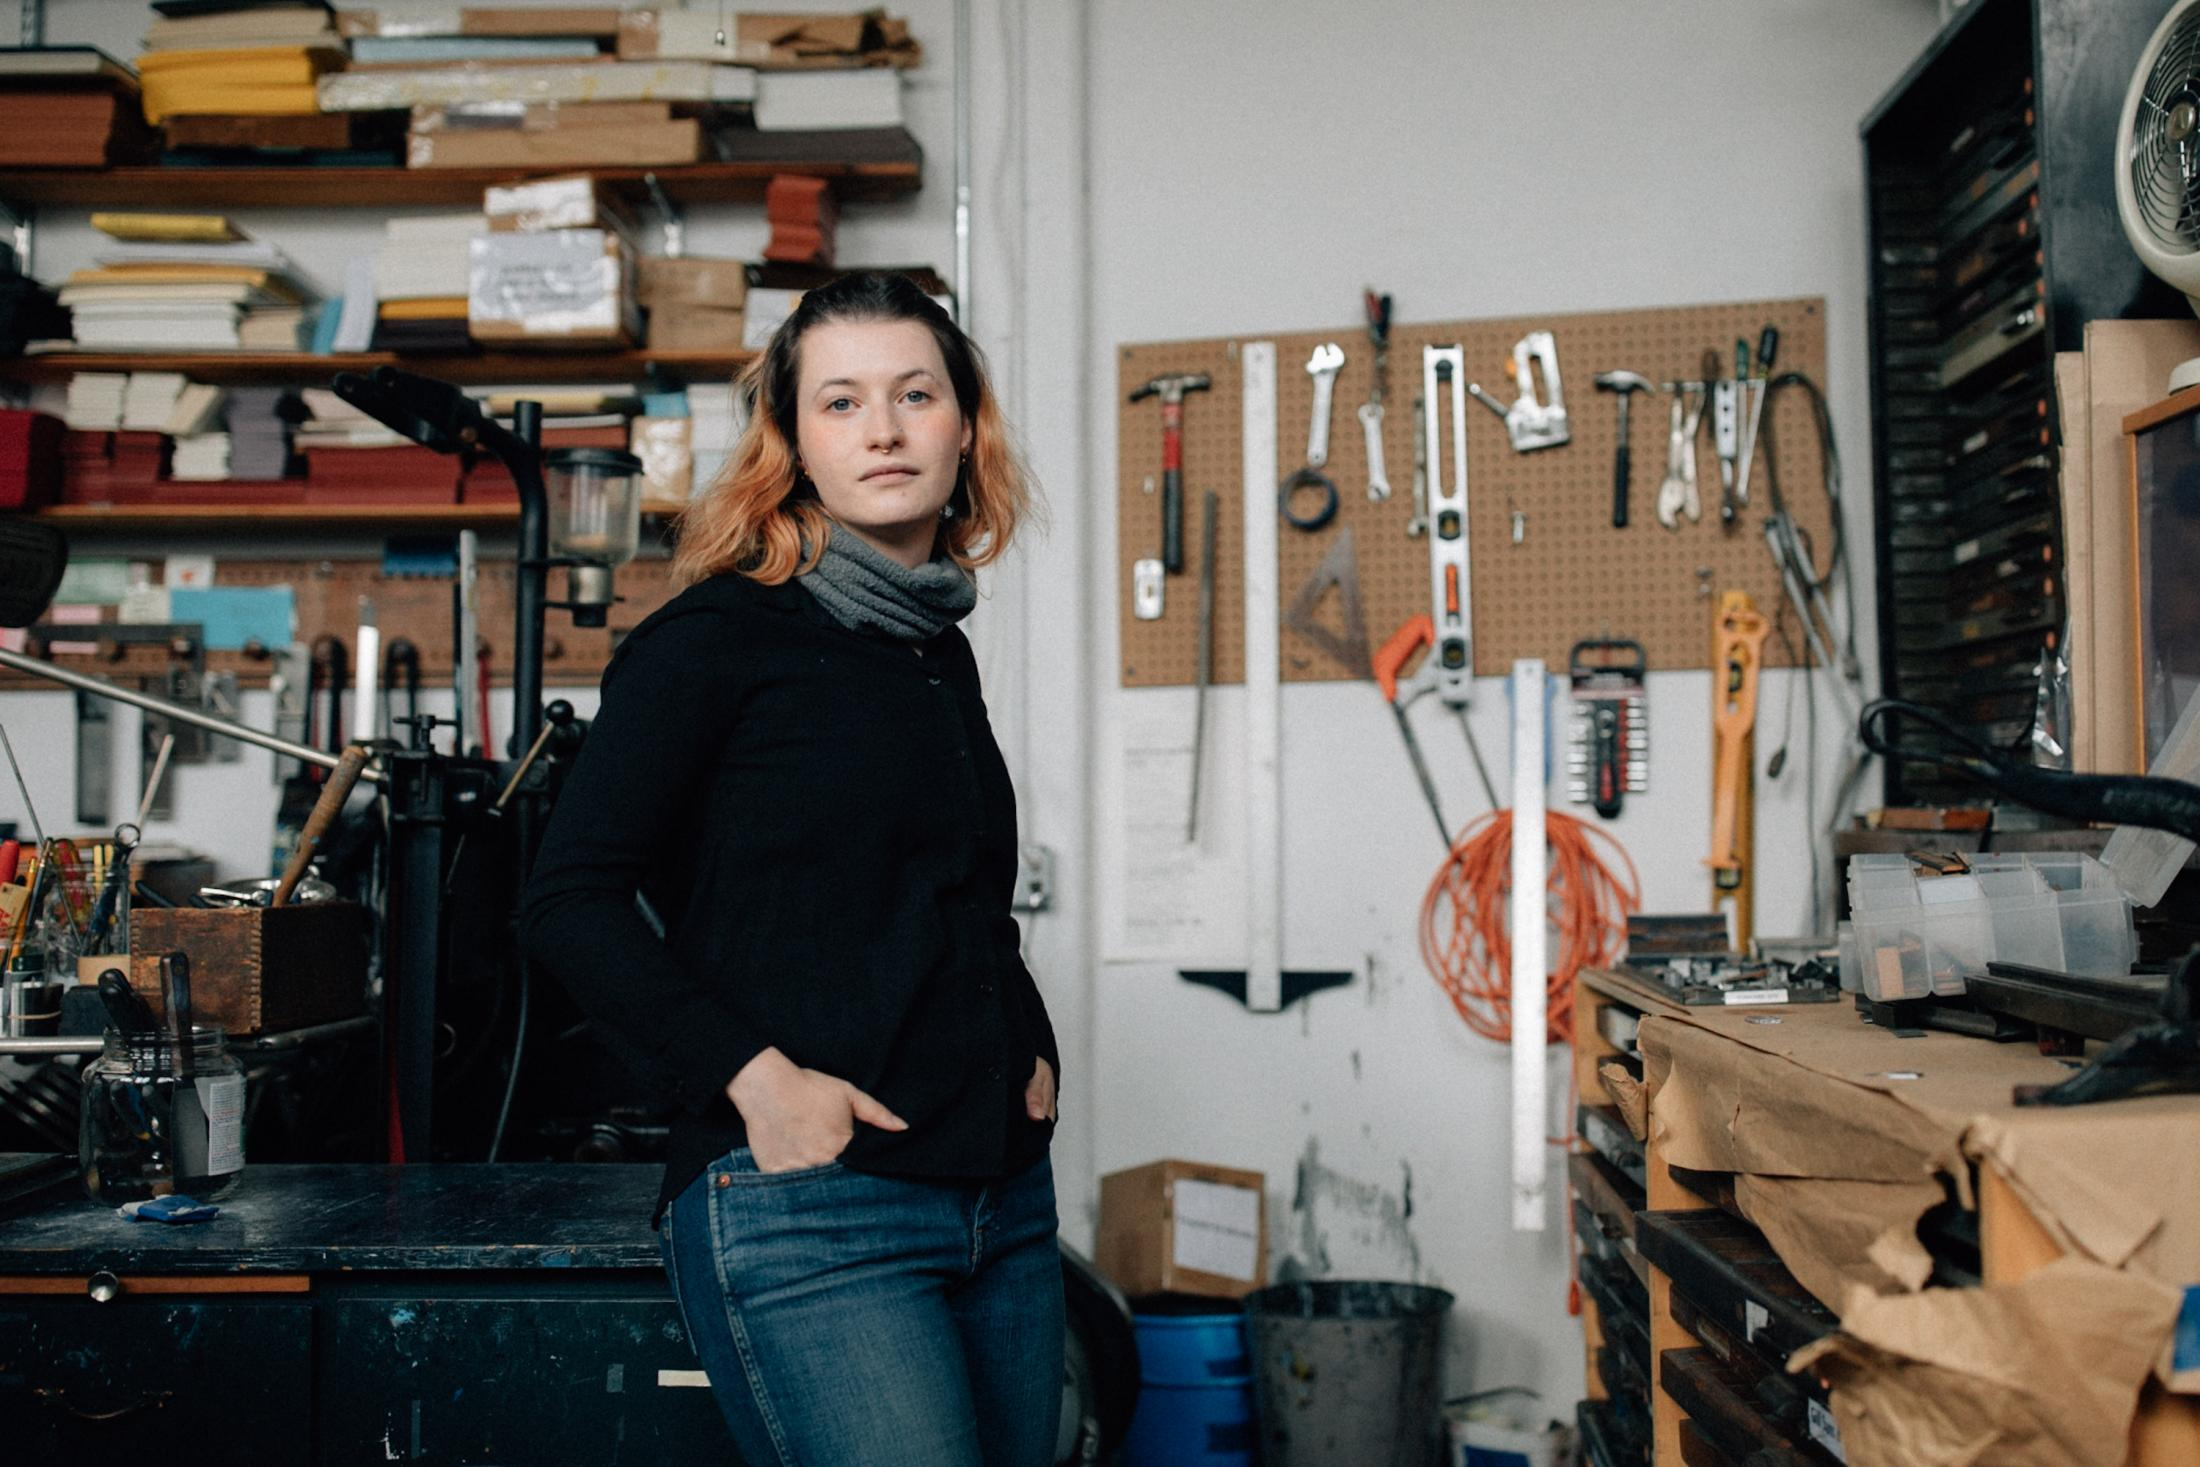 Sarah Lawson, editor and studio Manager of Ugly Duckling Presse, for The Wall Street Journal